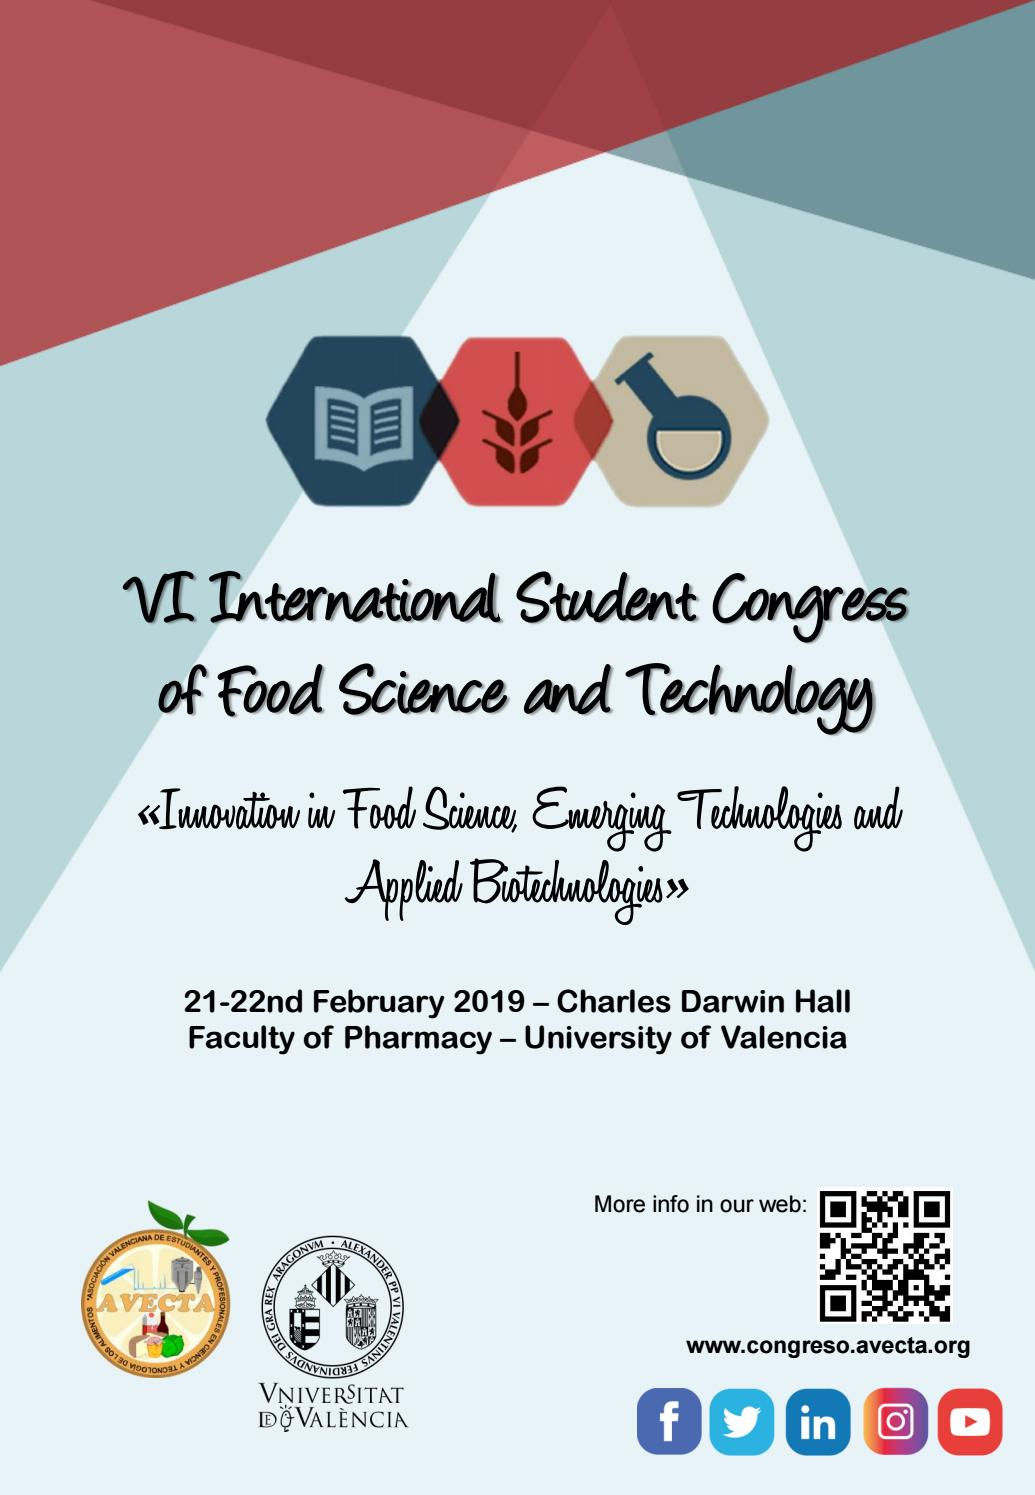 Abstracts Book Vi International Congress Of Food Science And Technology Valencia 2019 By Jorge Calpe Ruano Issuu Because of small parts these collections are meant for children ages 3 years and up. food science and technology valencia